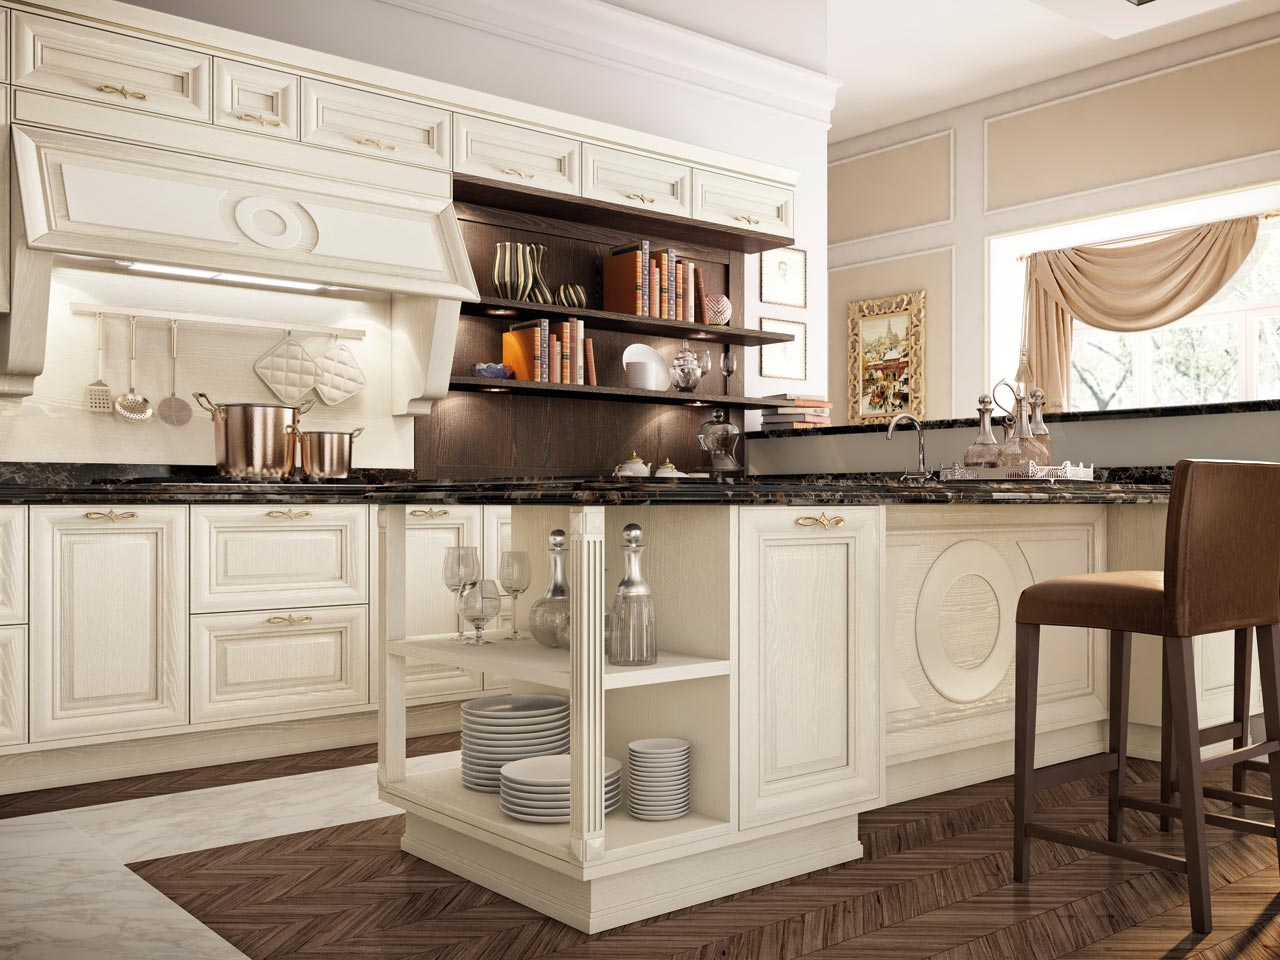 Pantheon cucina by lube industries s r l for Prezzo cucine lube